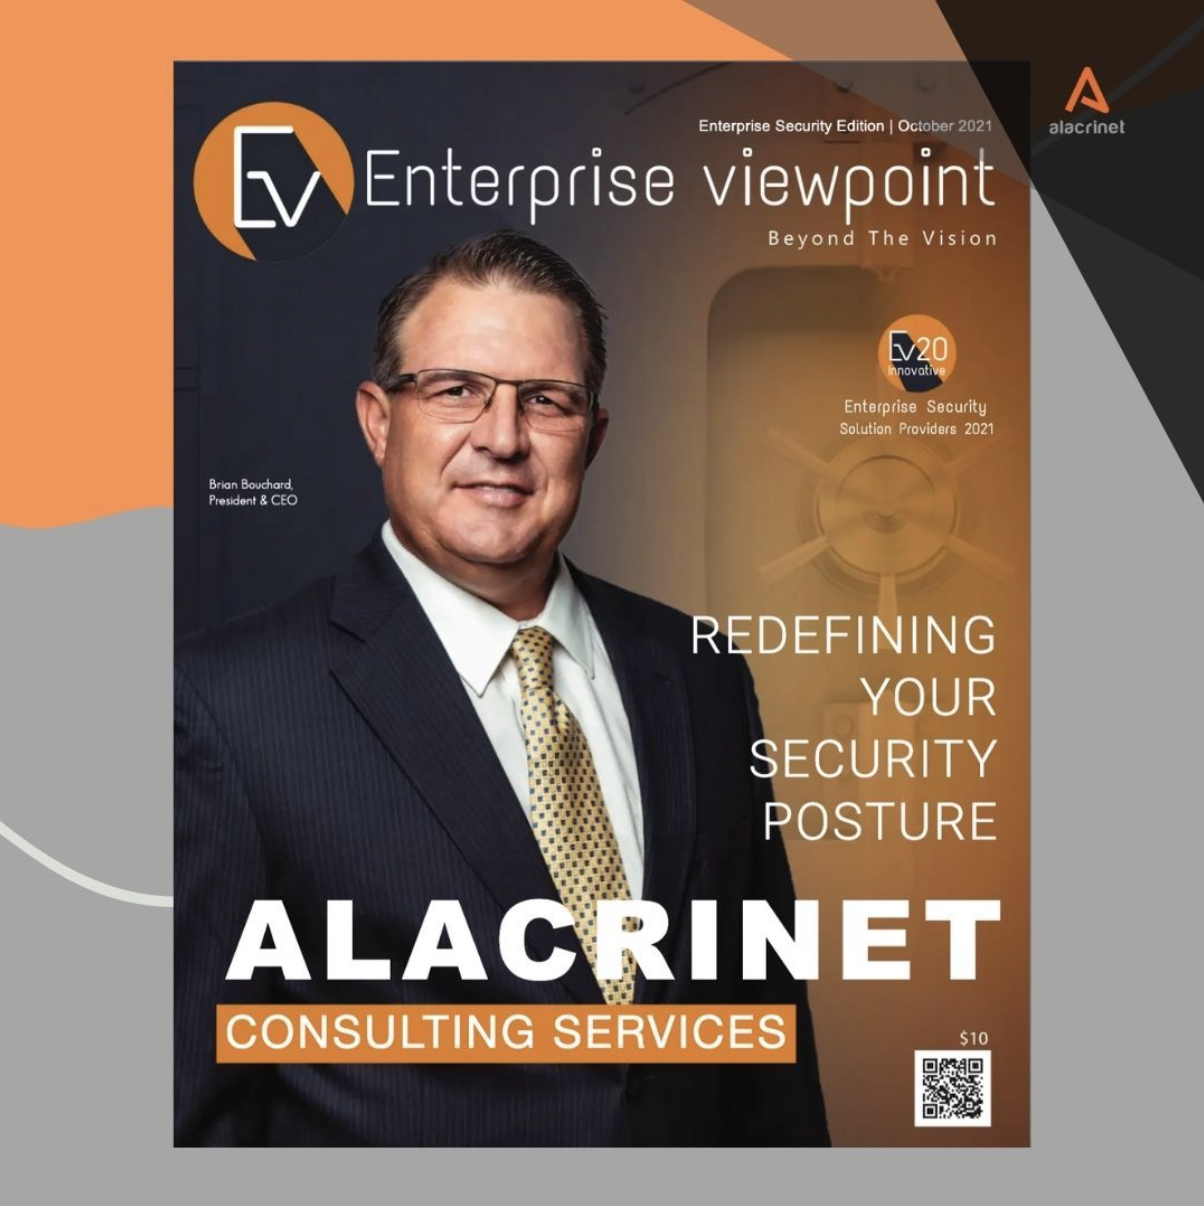 Enterprise Viewpoint Cover Story - Enterprise Security 2021 Special Edition